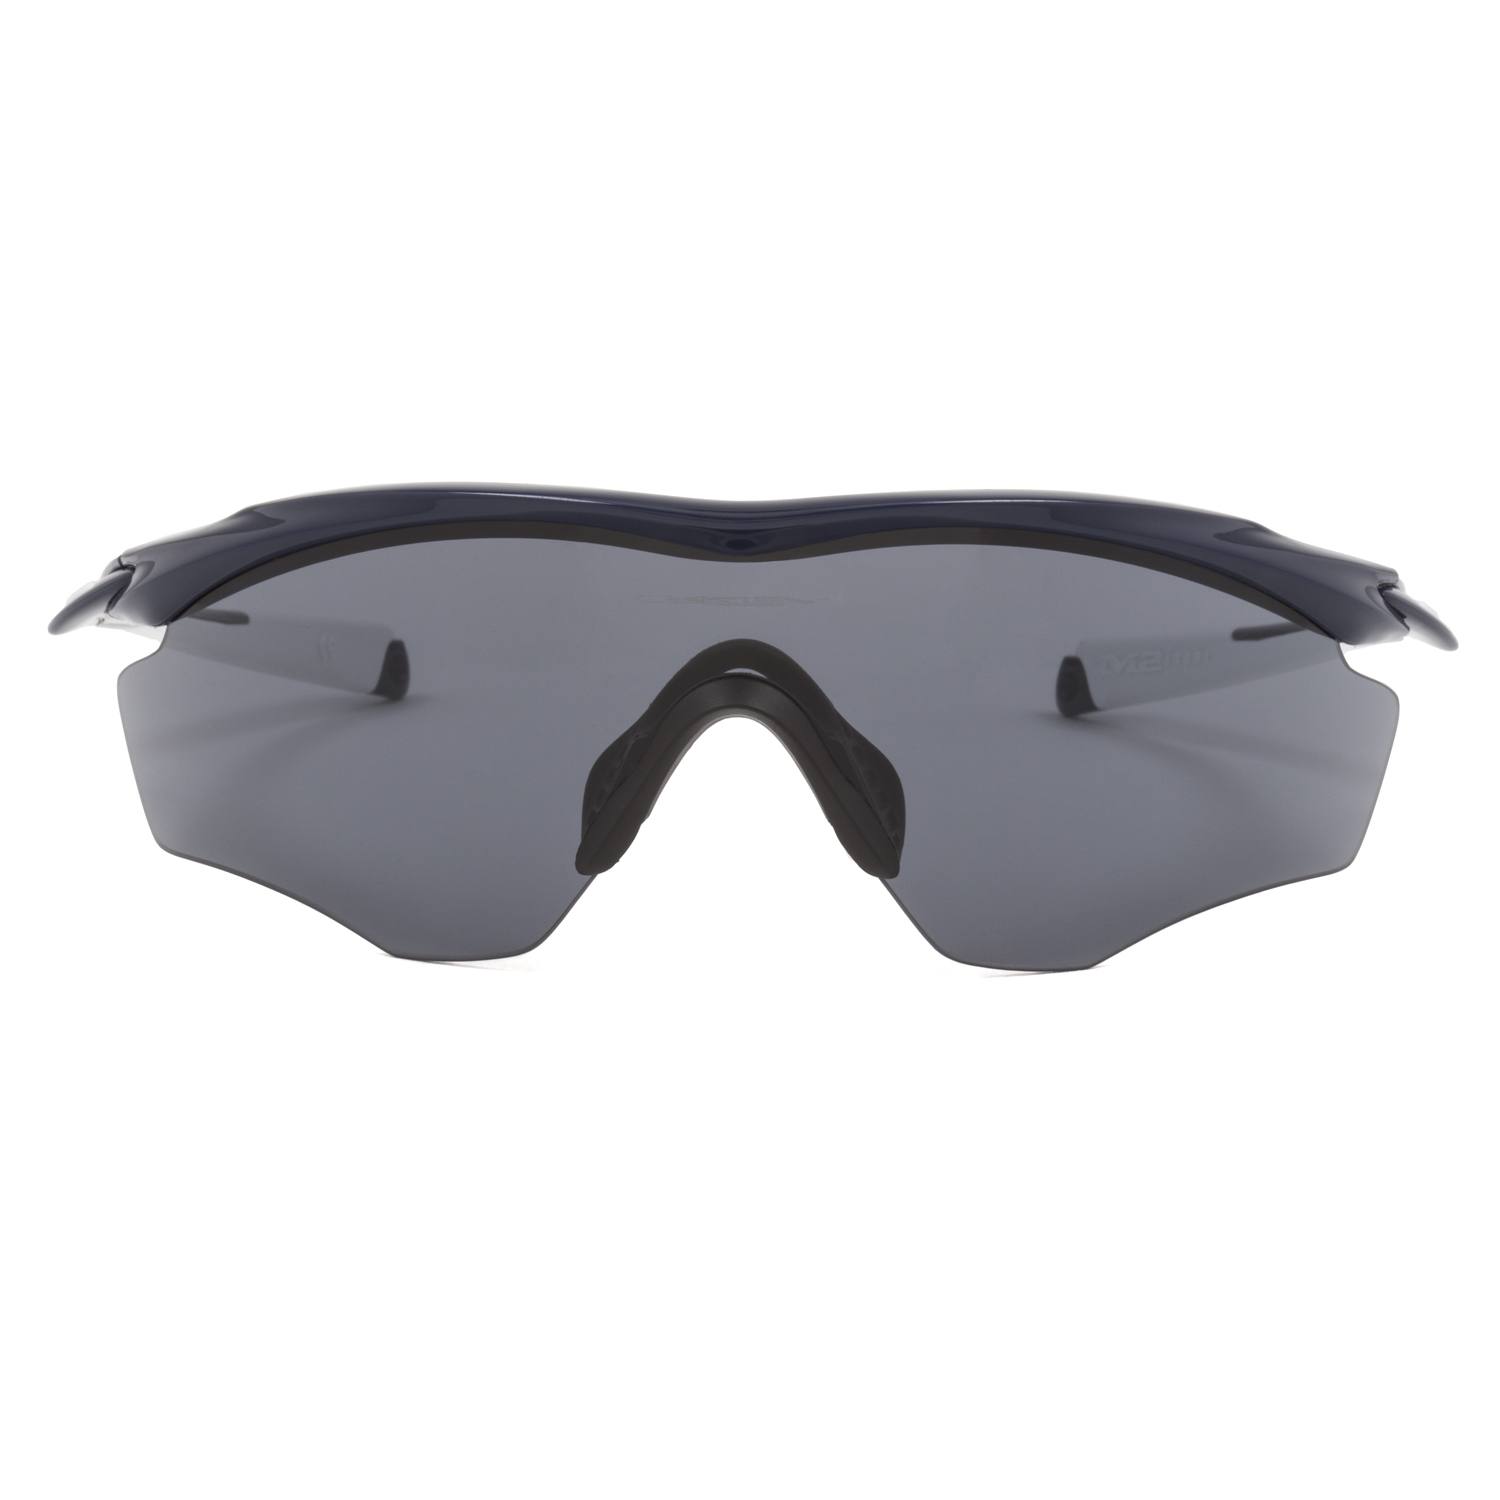 Oakley M2 Frame Glasses : Oakley M2 Frame XL Sunglasses OO9343-02 Polished Navy Blue ...